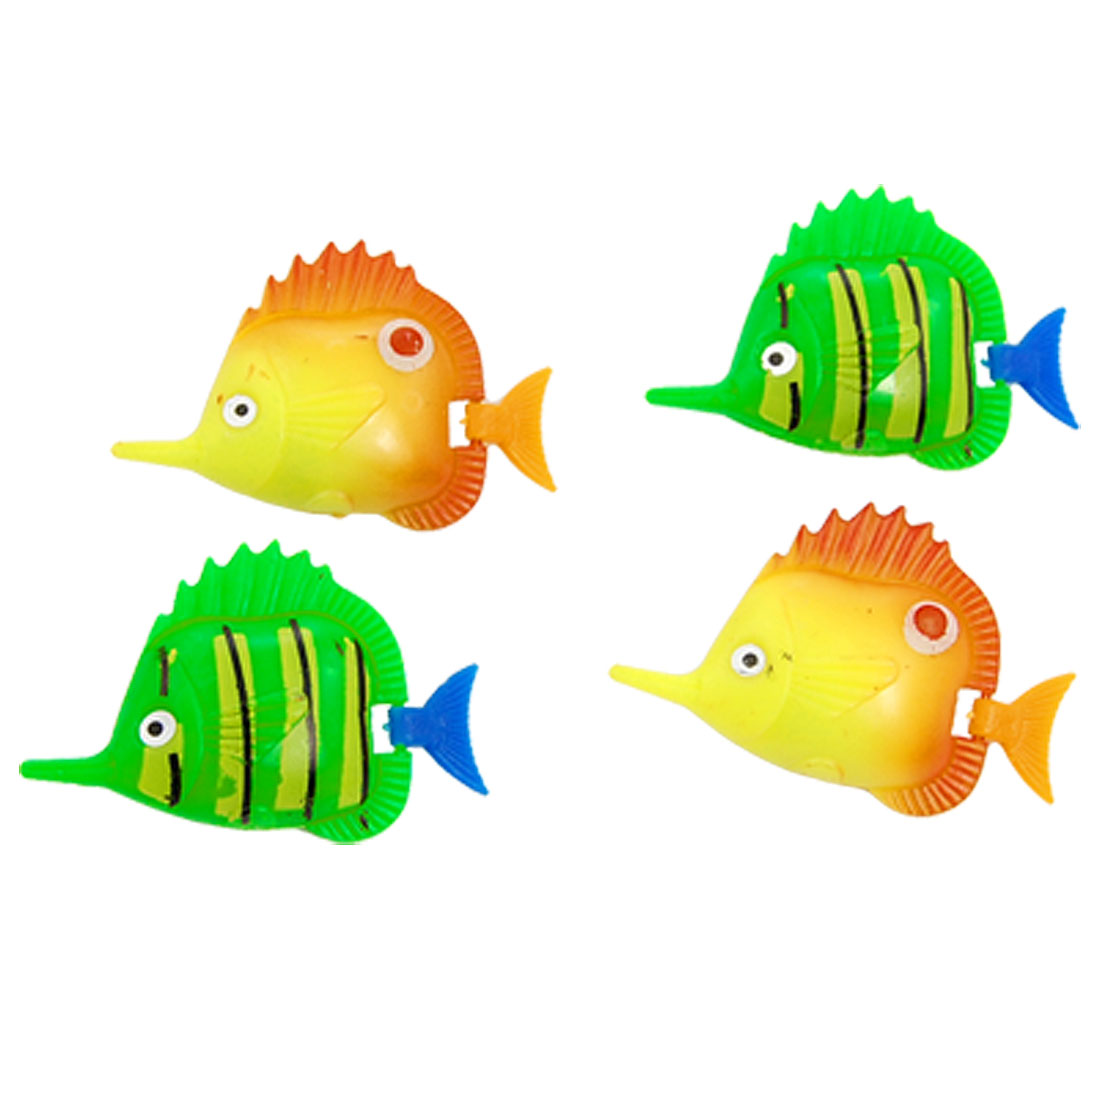 4 Pcs Artificial Plastic Movable Fish Decor for Aquarium